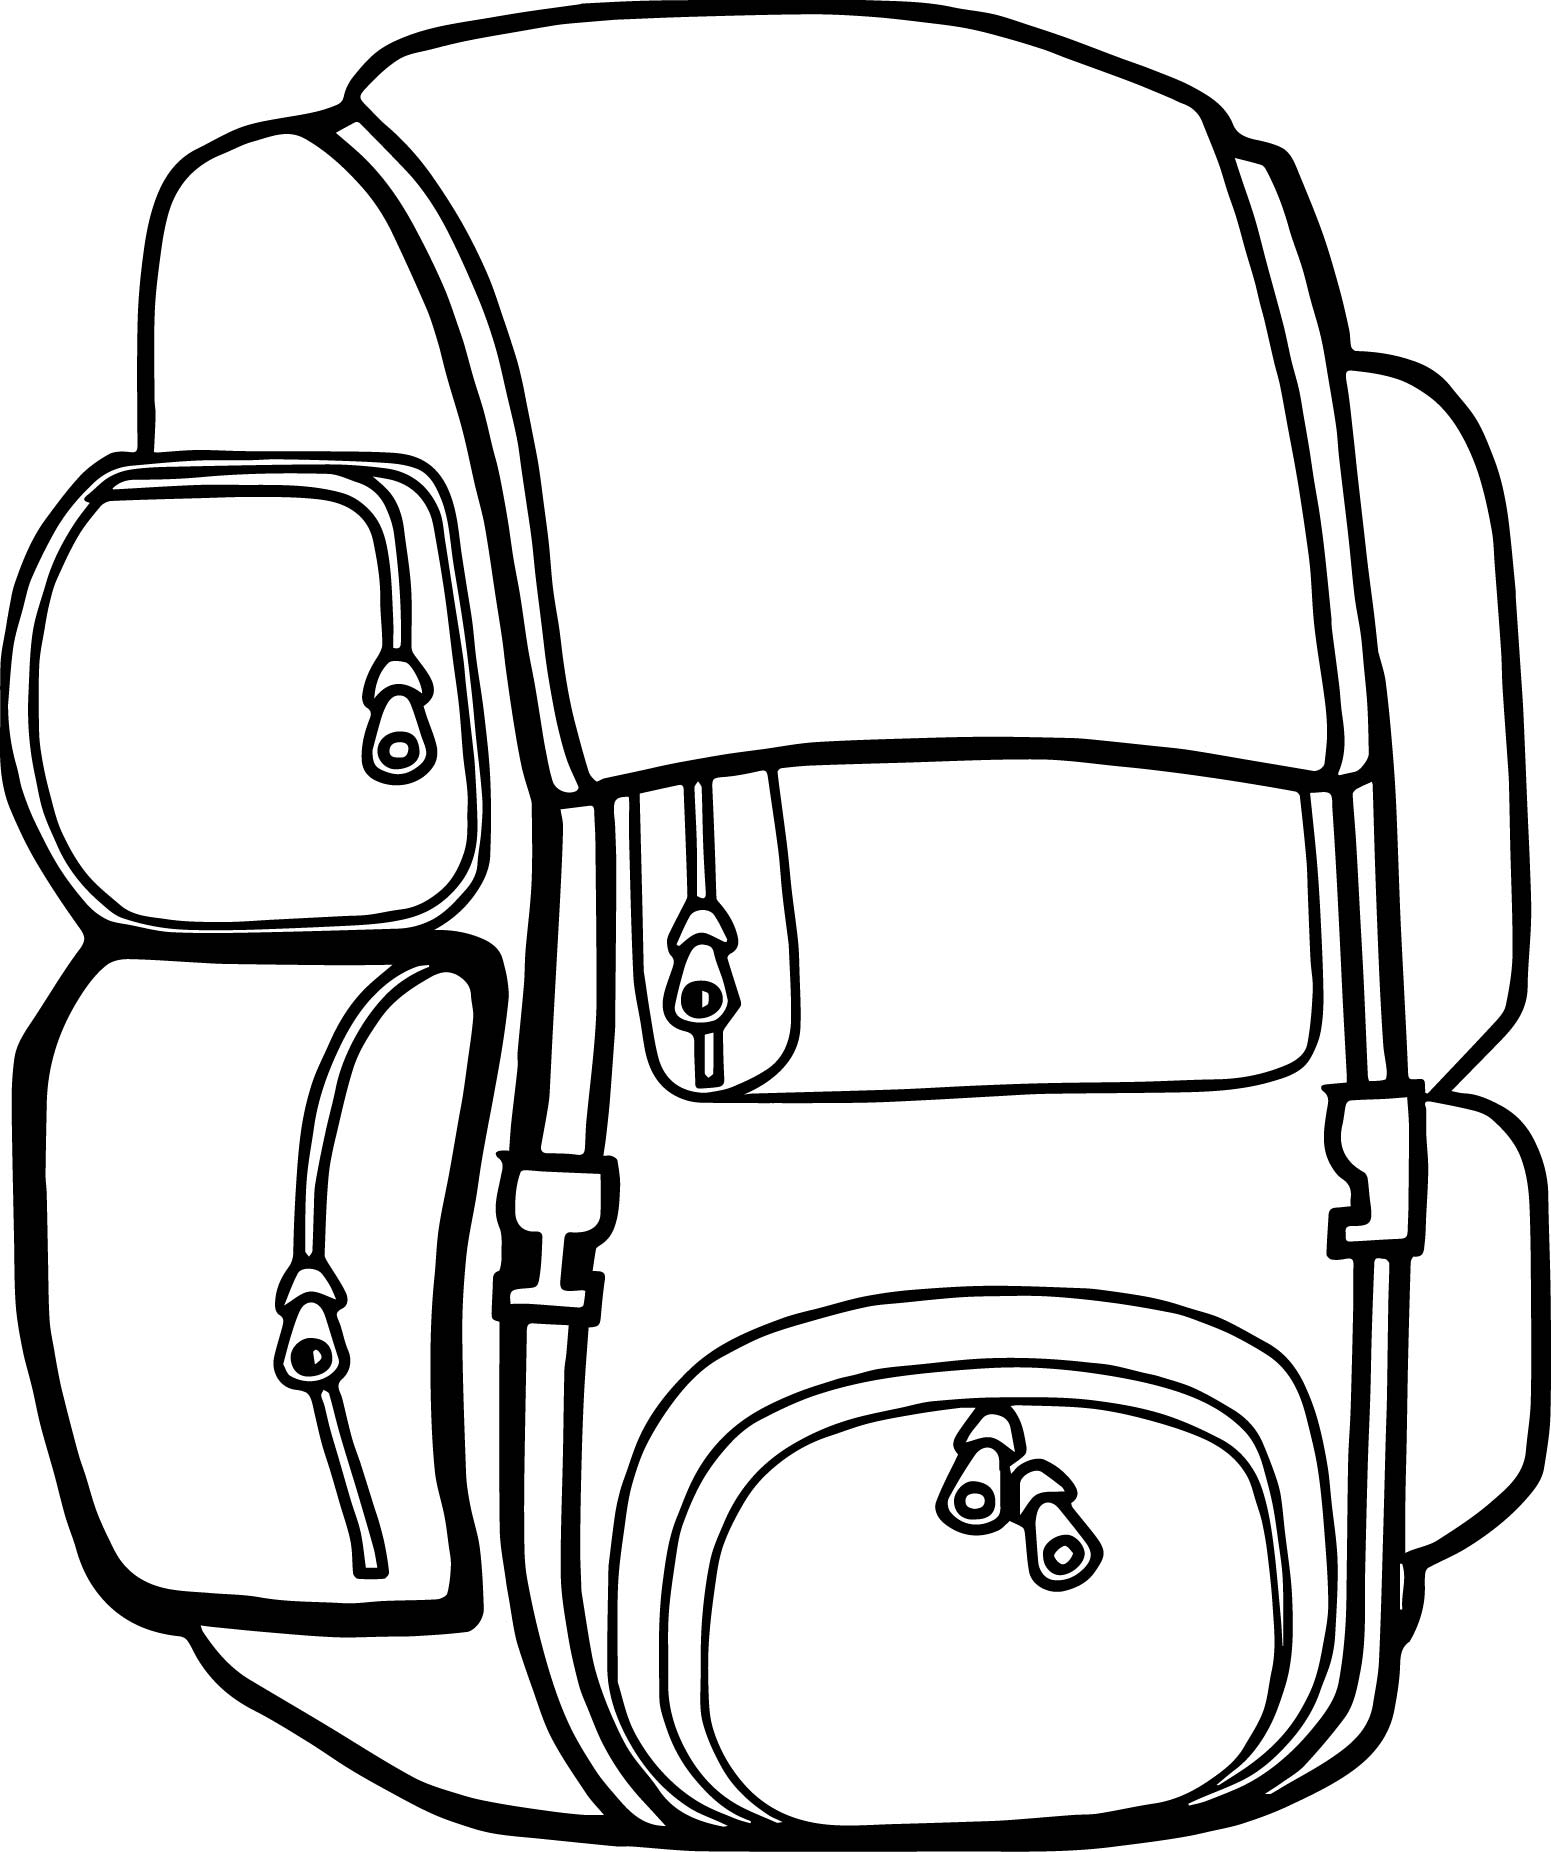 Backpack Coloring: Backpack Free Images Camp Camping Coloring Page